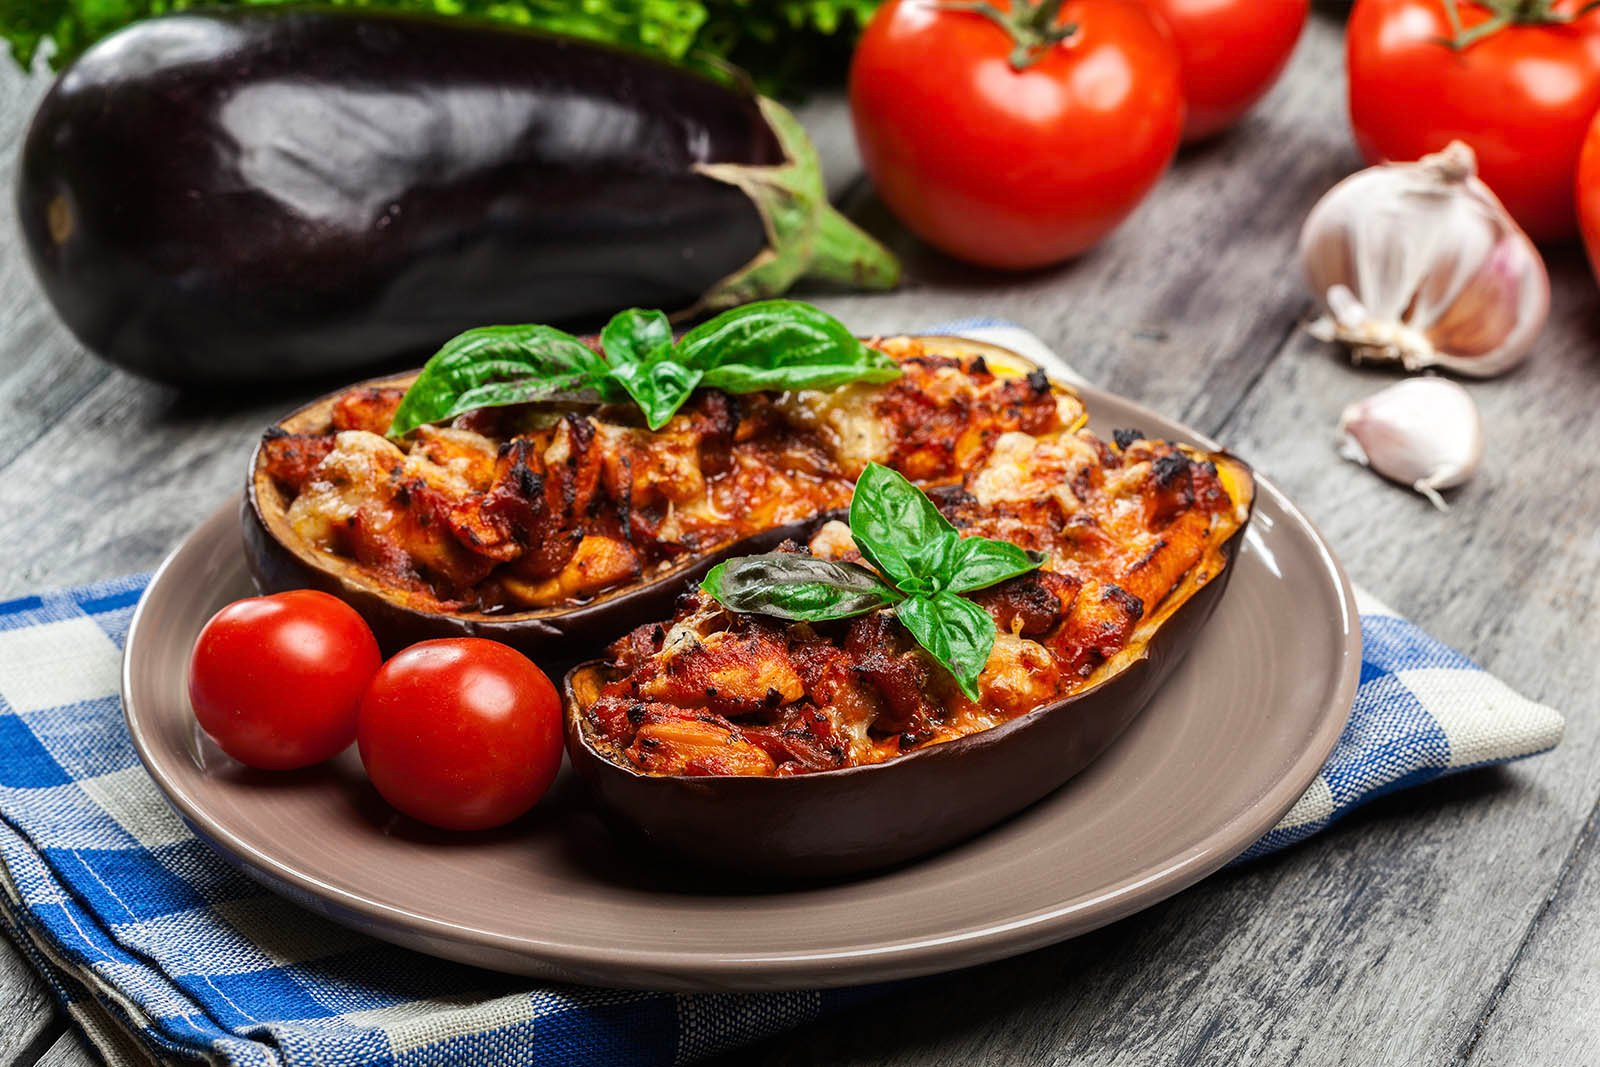 stuffed eggplant on a brown plate with cherry tomatoes and basil leaves on a table with eggplant, tomatoes, and garlic in the background